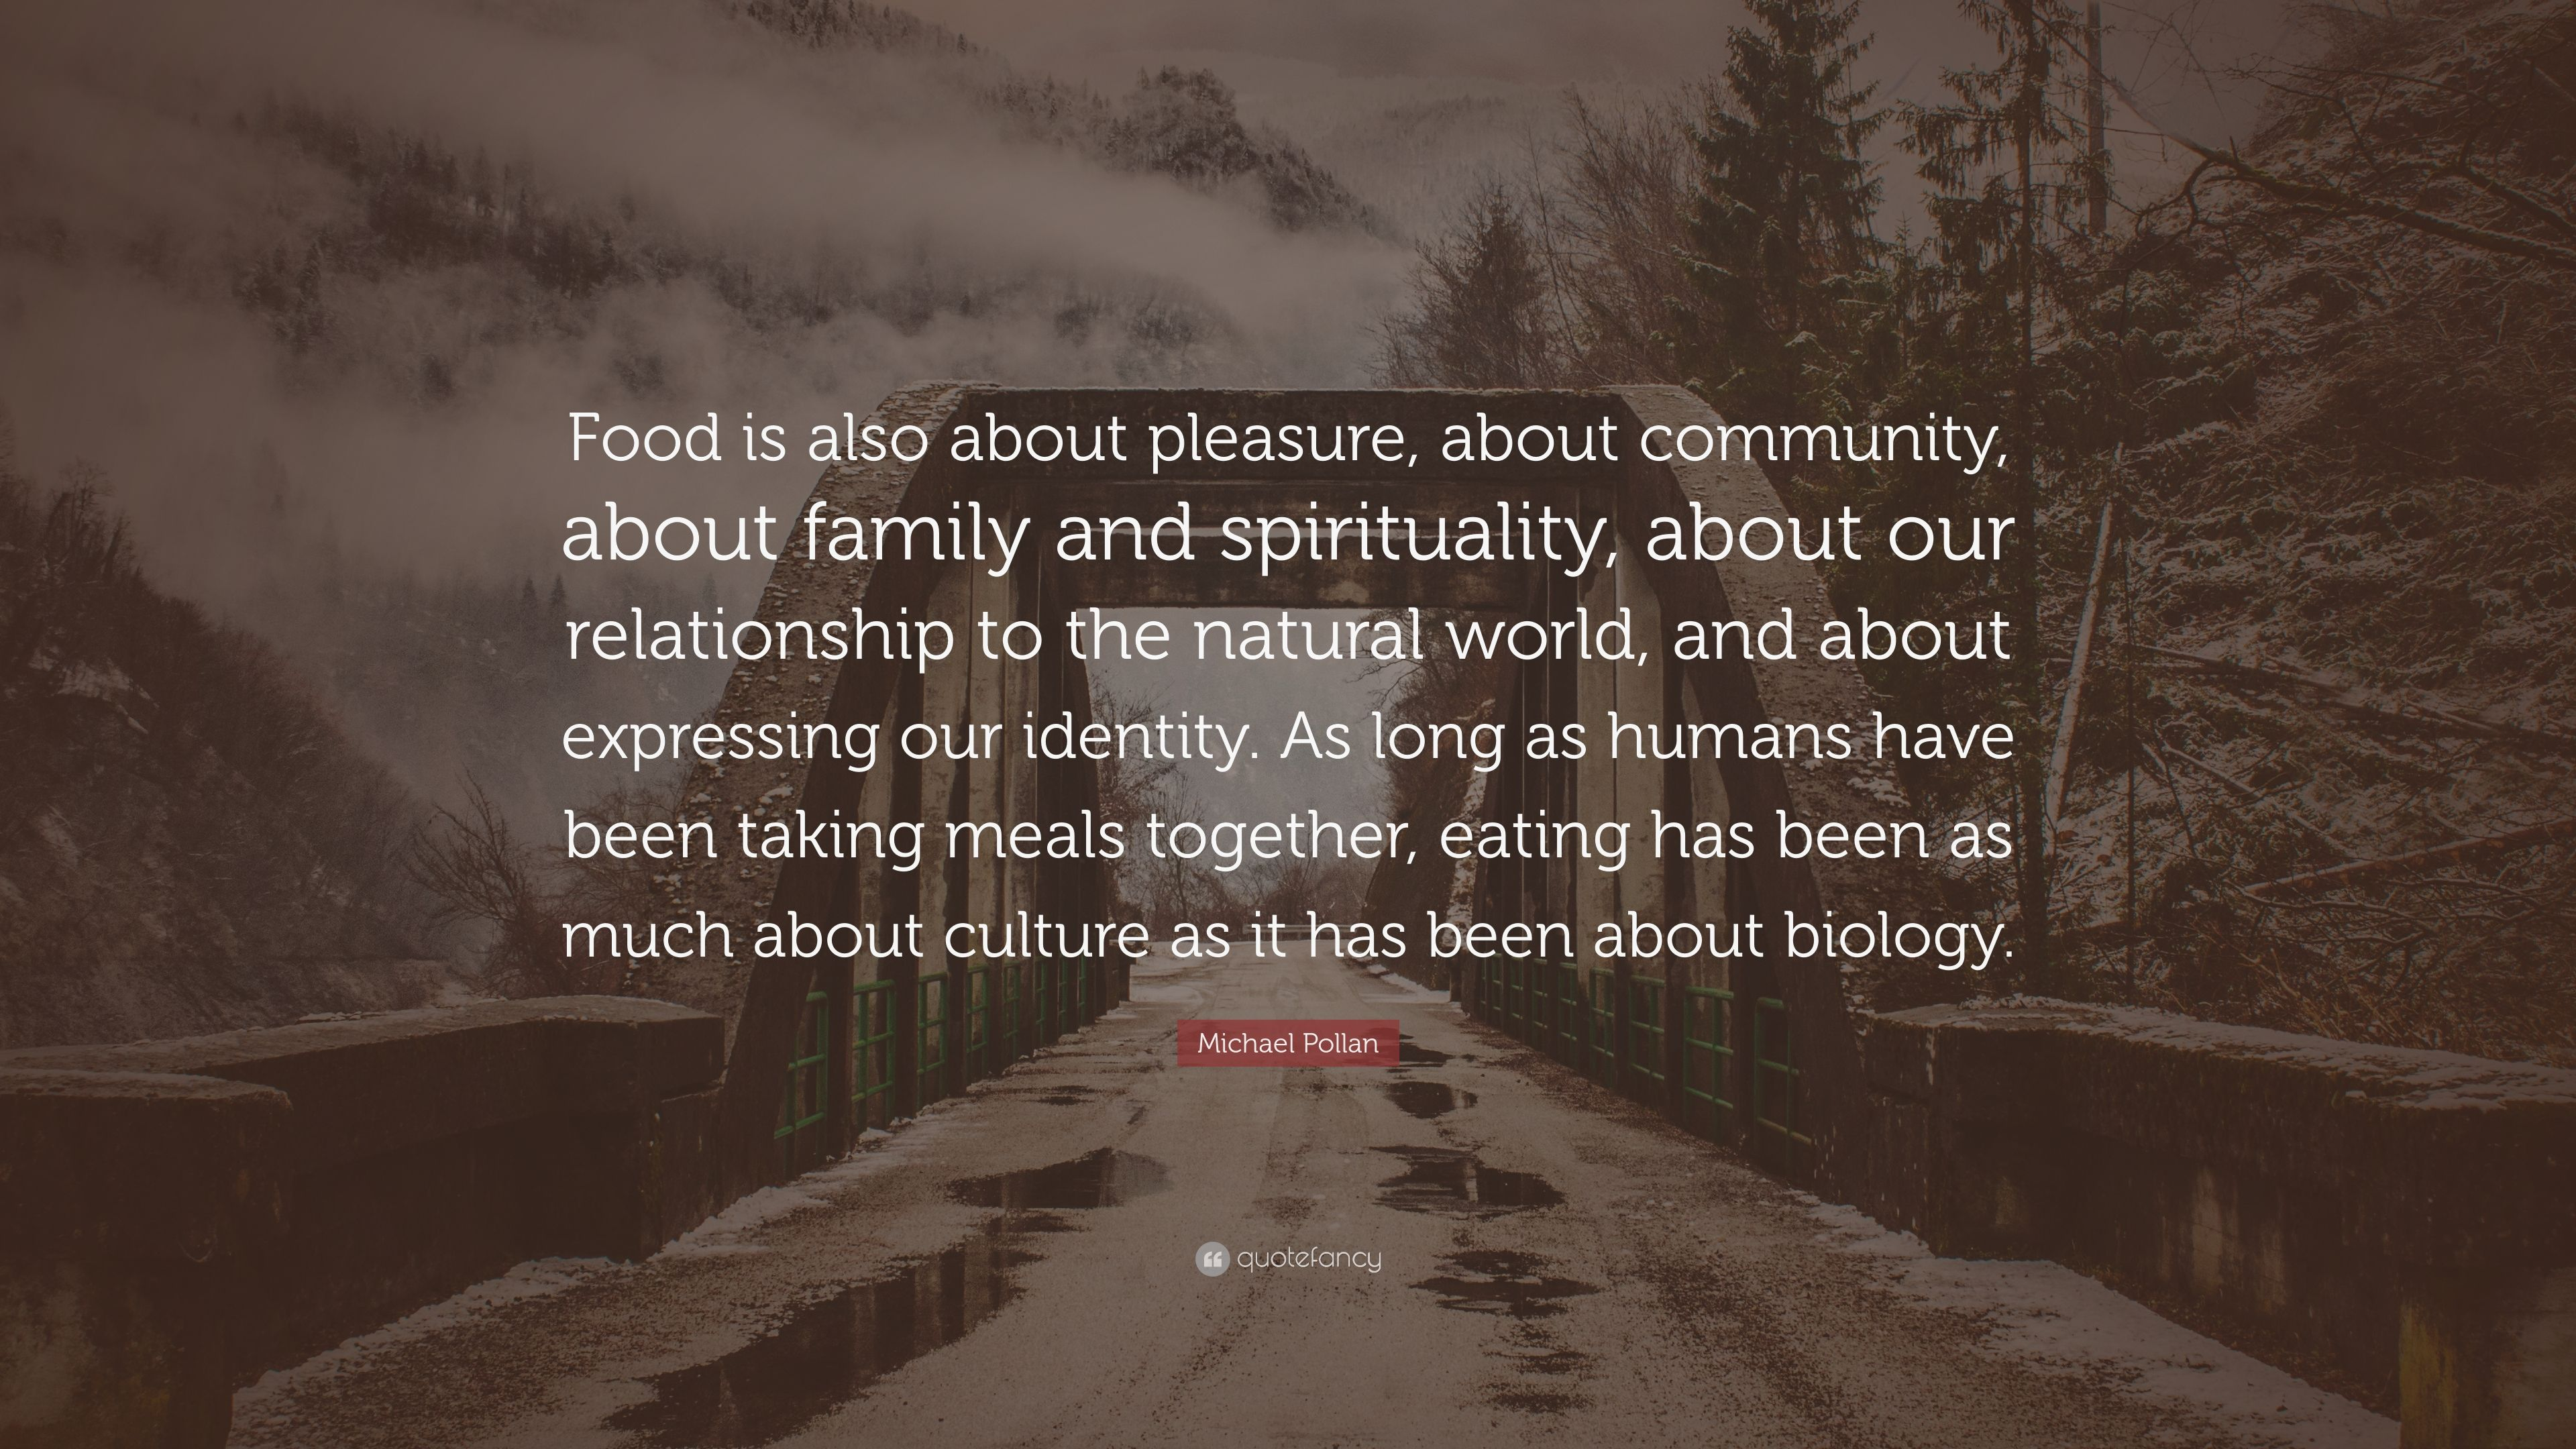 cultural identity quotes